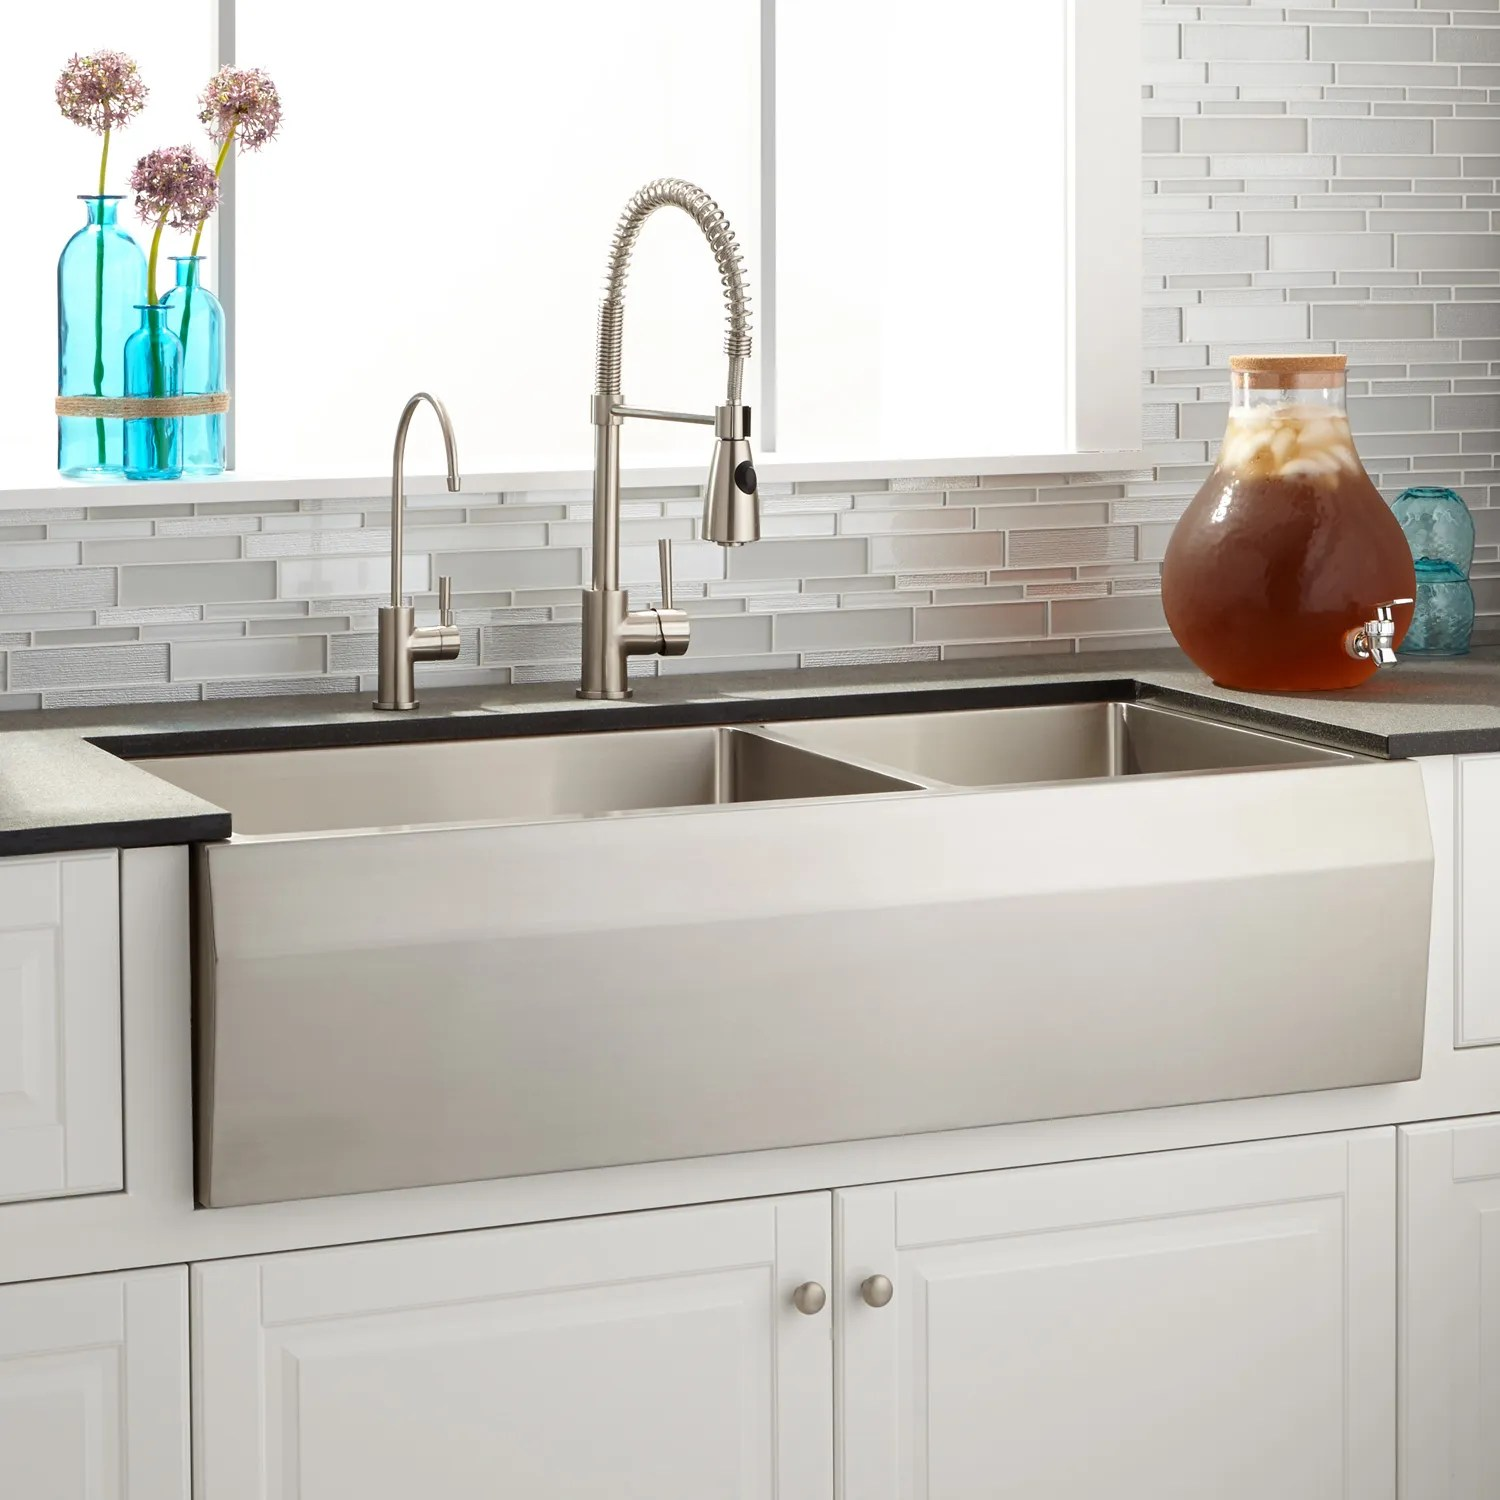 42 inch kitchen sink materials farmhouse signature hardware kingsley 60 40 offset double bowl stainless steel beveled